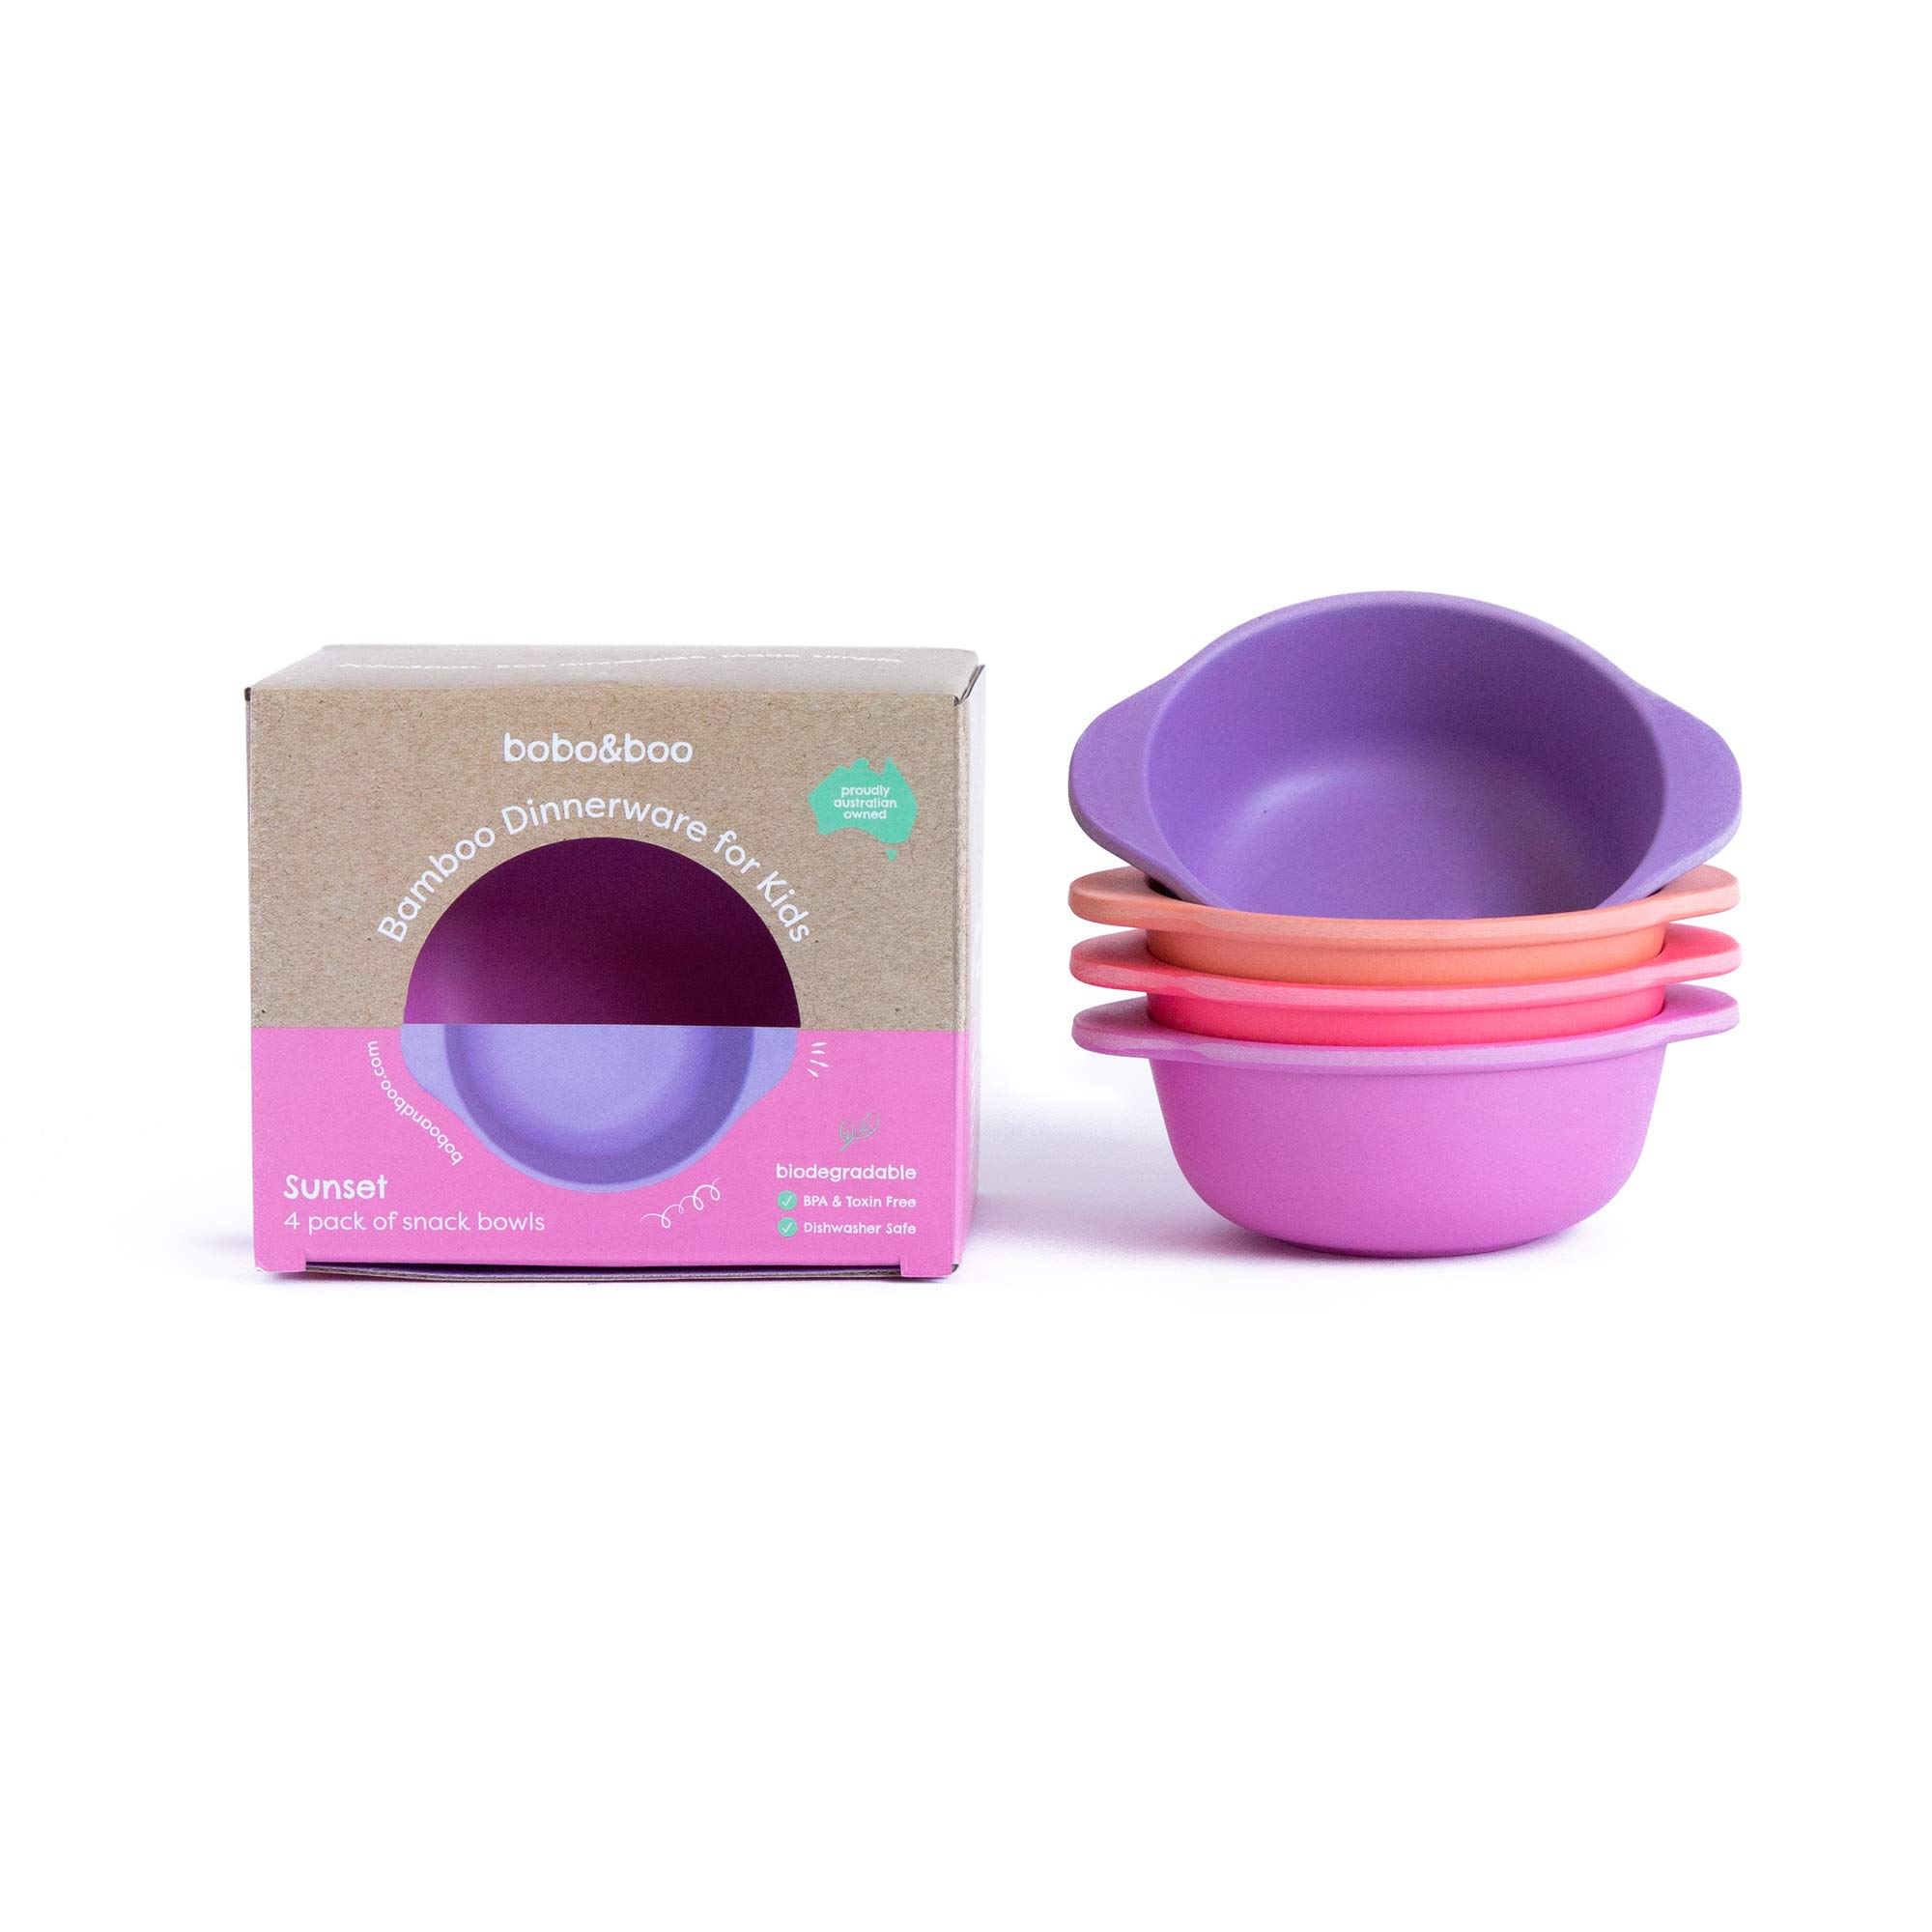 Bobo&Boo Bamboo Kids Snack Bowls, Set of 4 Bamboo Dishes, Non Toxic, Eco Friendly & Stackable Kids Snack Containers, Great Gift for Baby Showers, Birthdays & Preschool Graduations, Sunset by Bobo&boo